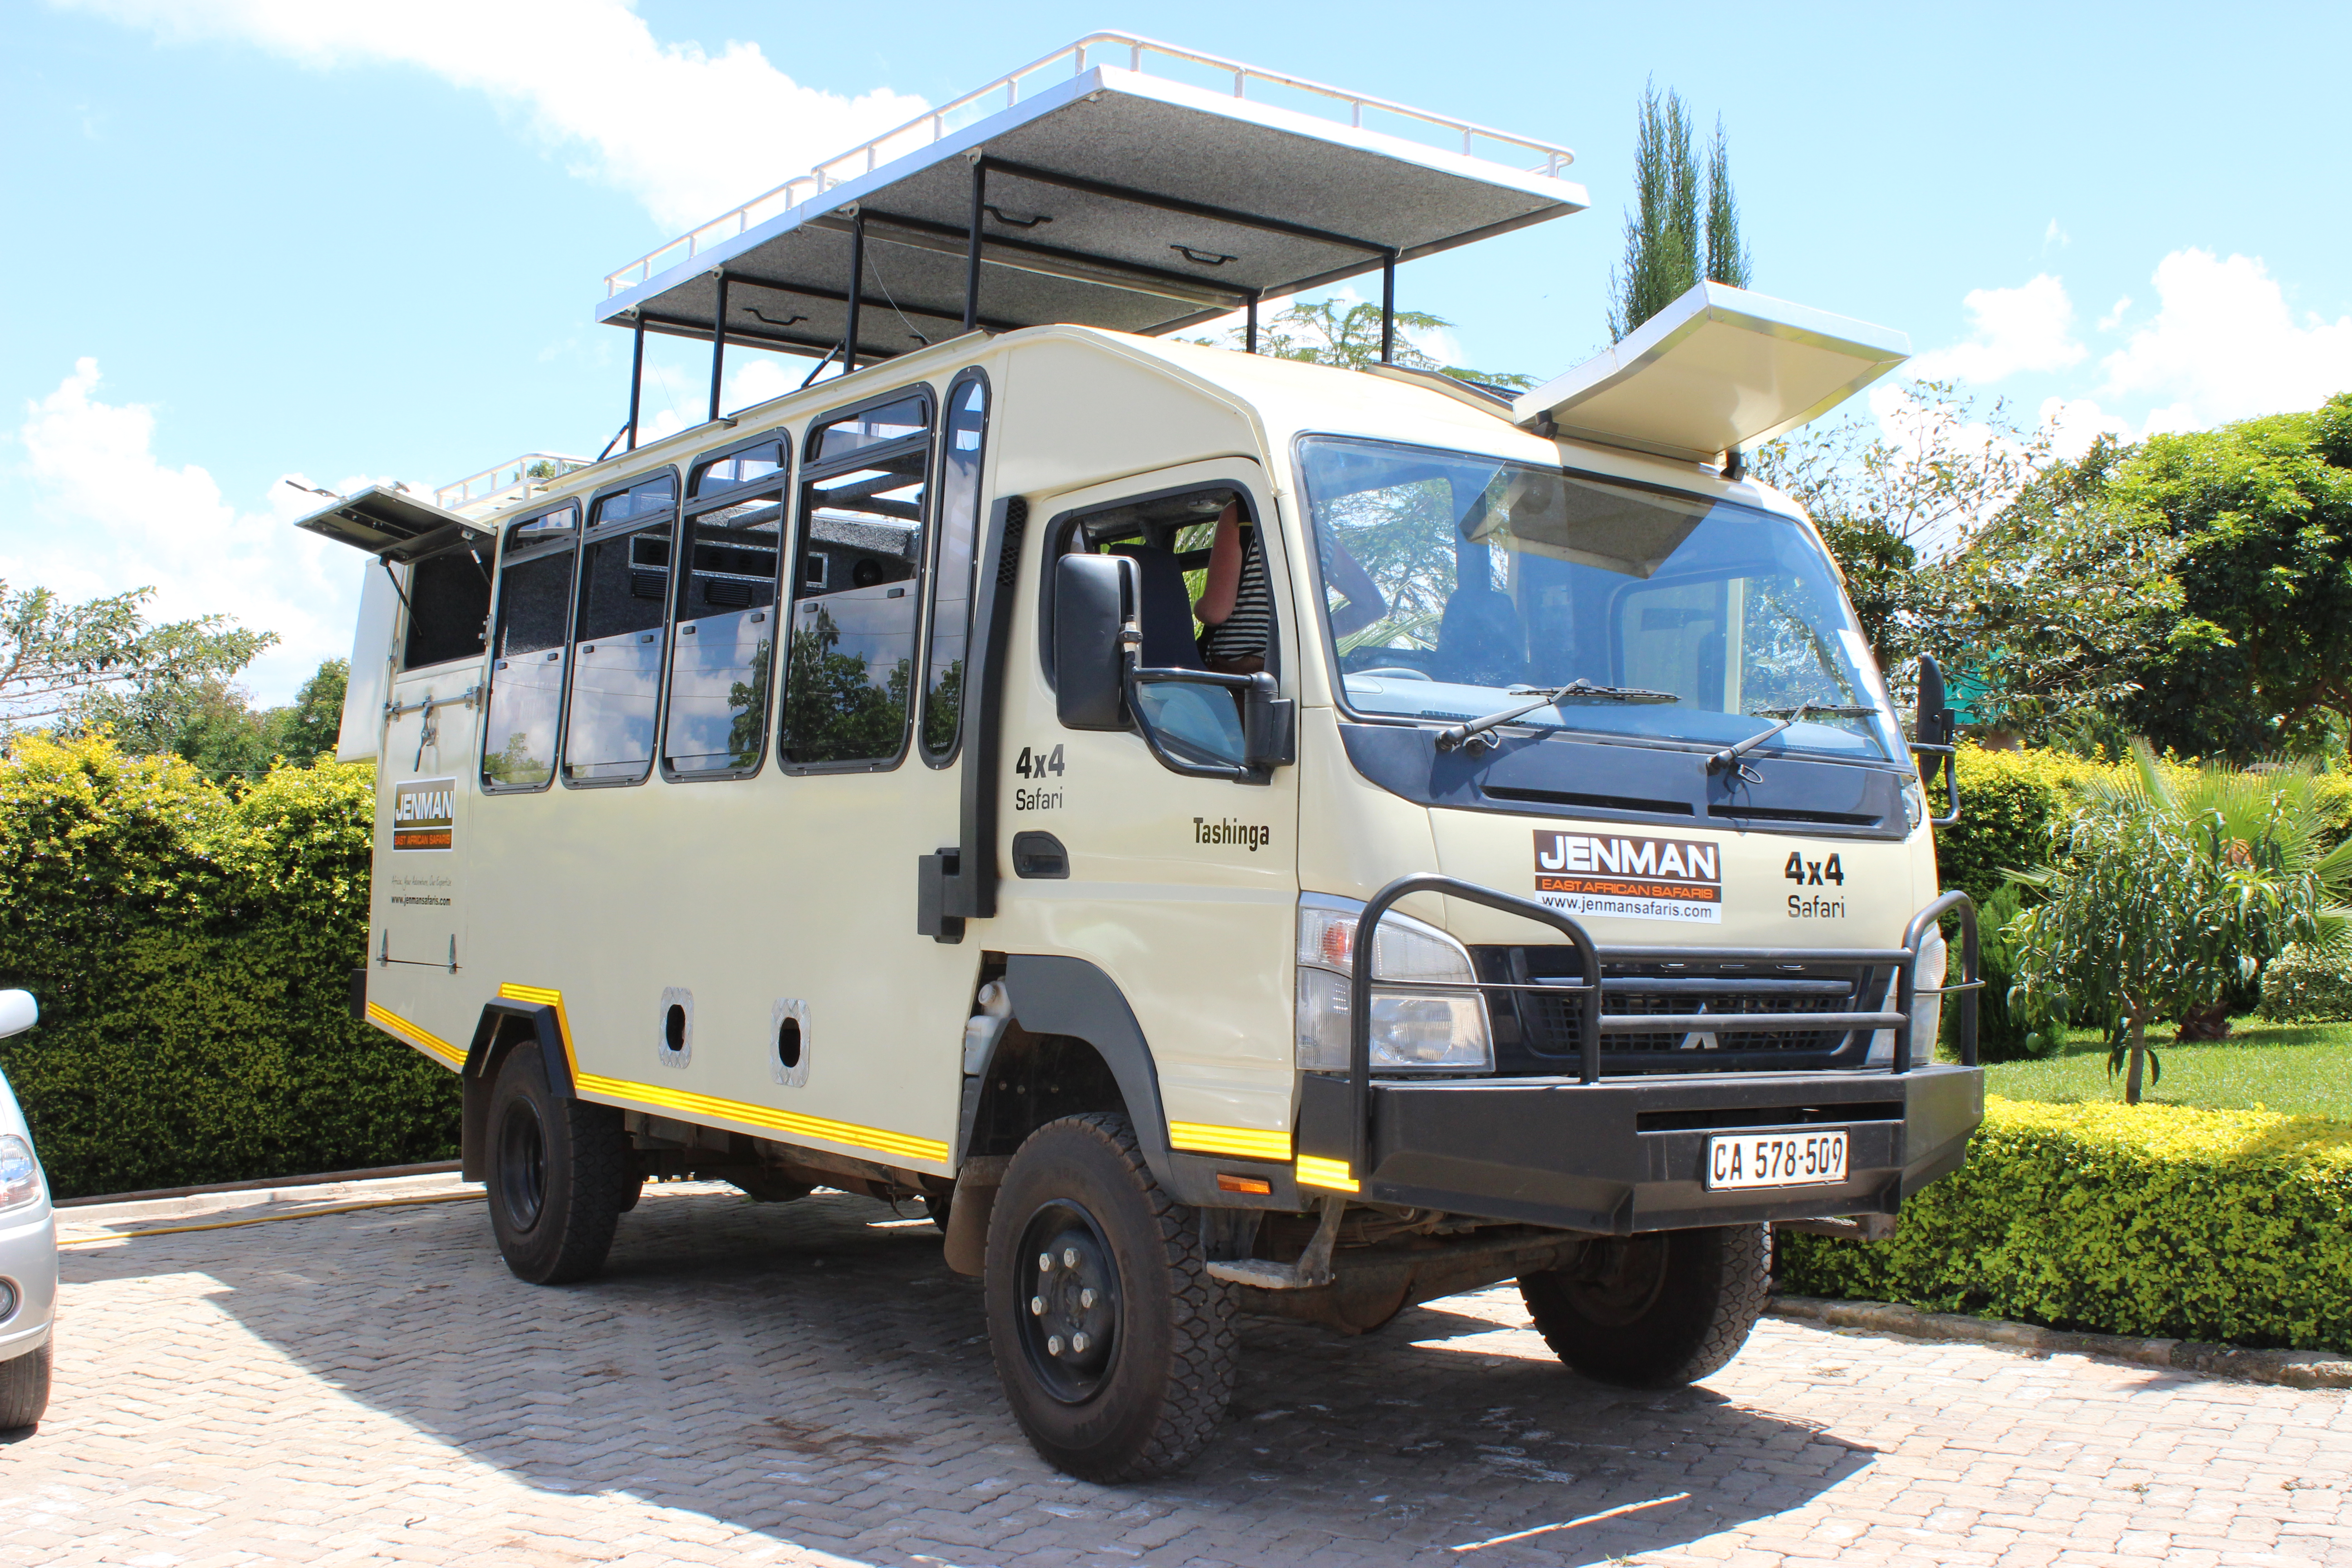 4x4 12-seater